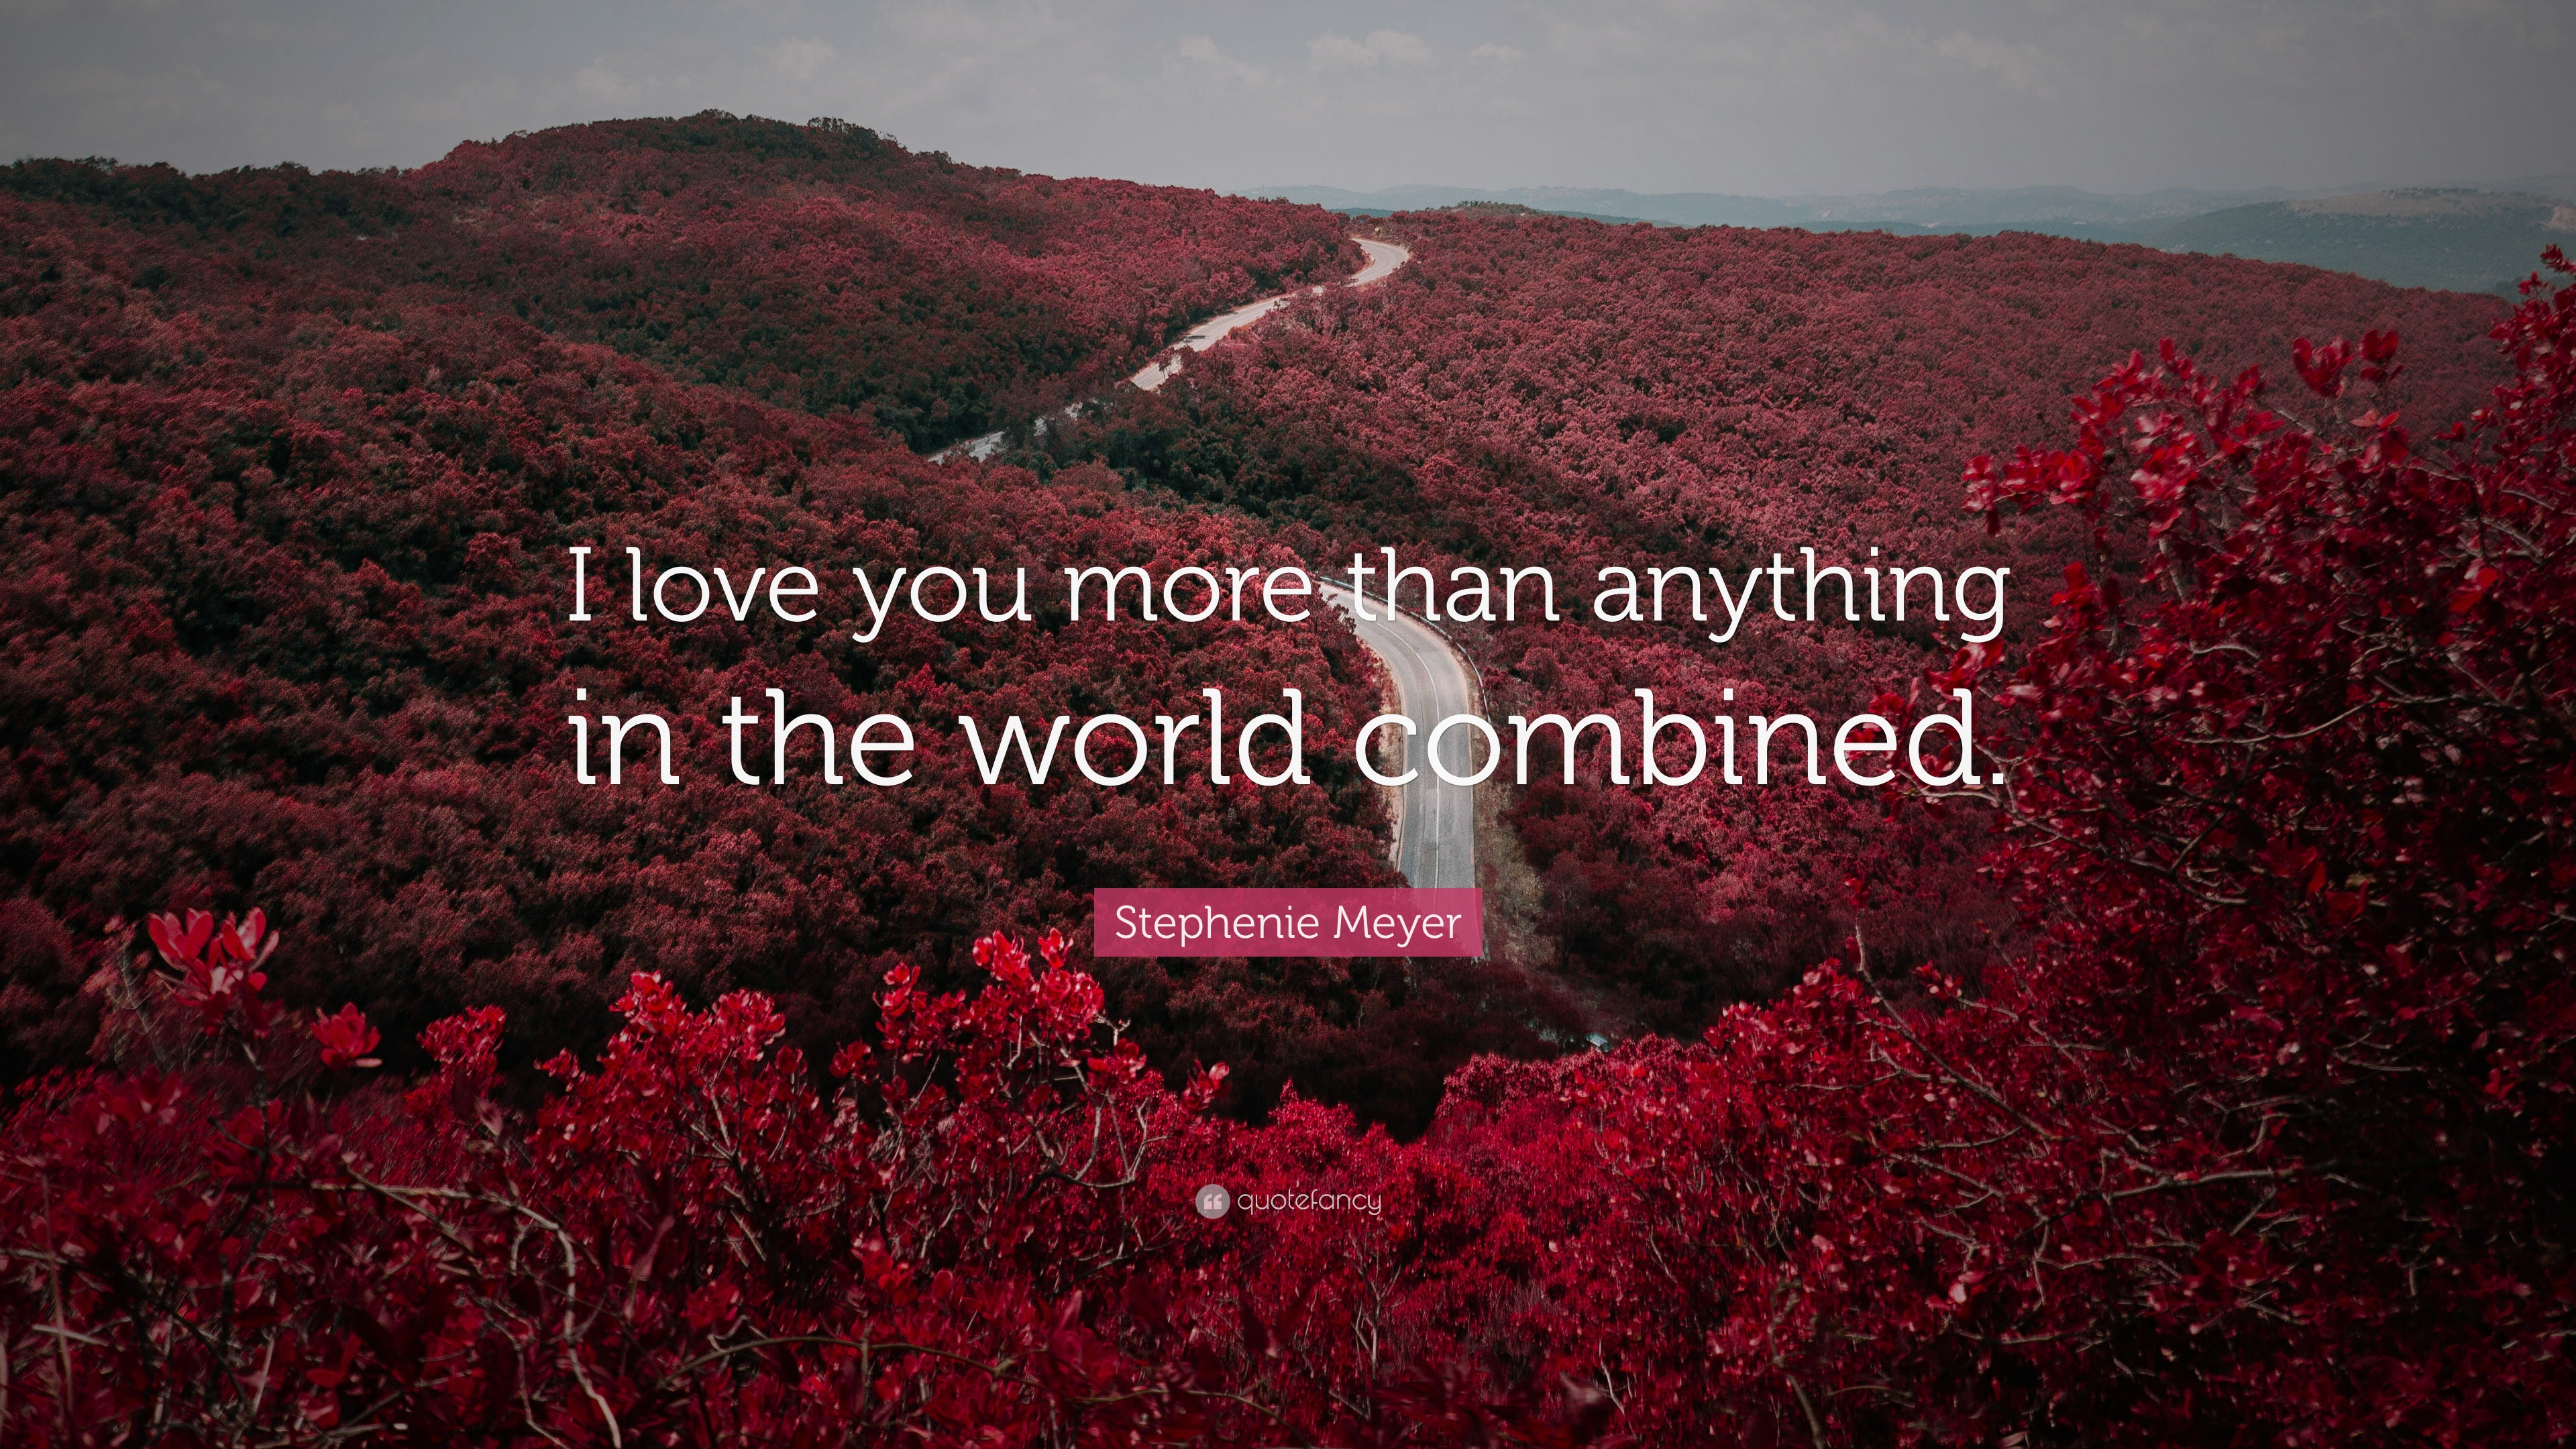 Stephenie Meyer Quote I Love You More Than Anything In The World